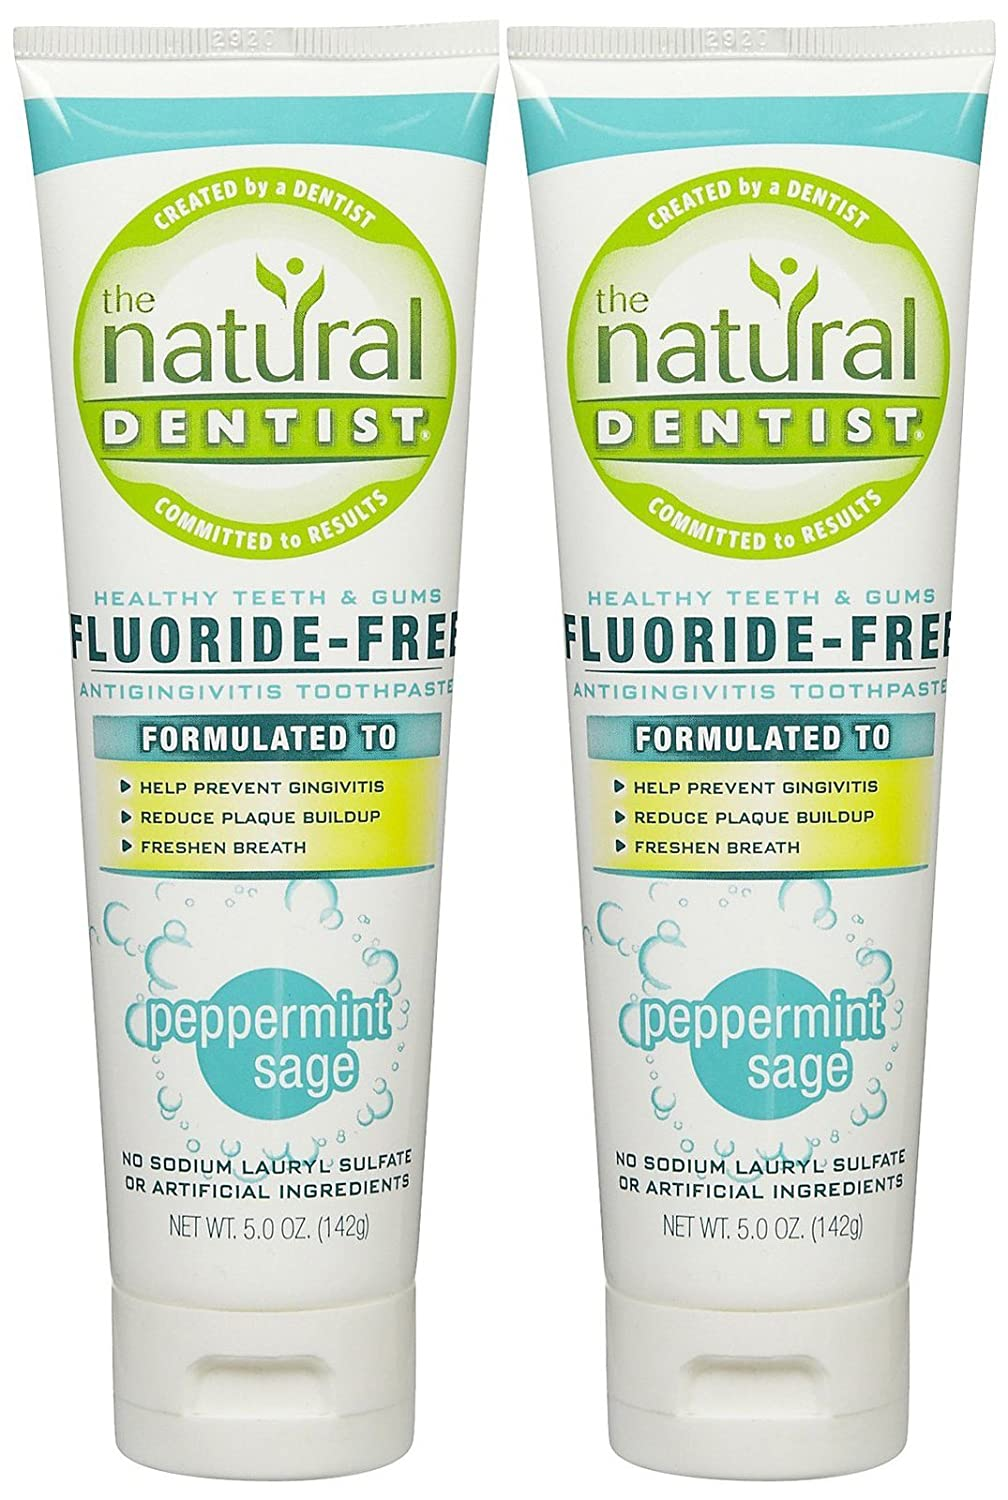 The Natural Dentist Healthy Teeth & Gums Fluoride-Free Toothpaste - 5 oz - Peppermint Sage - 2 pk by Natural Dentist B01HA8CXDG